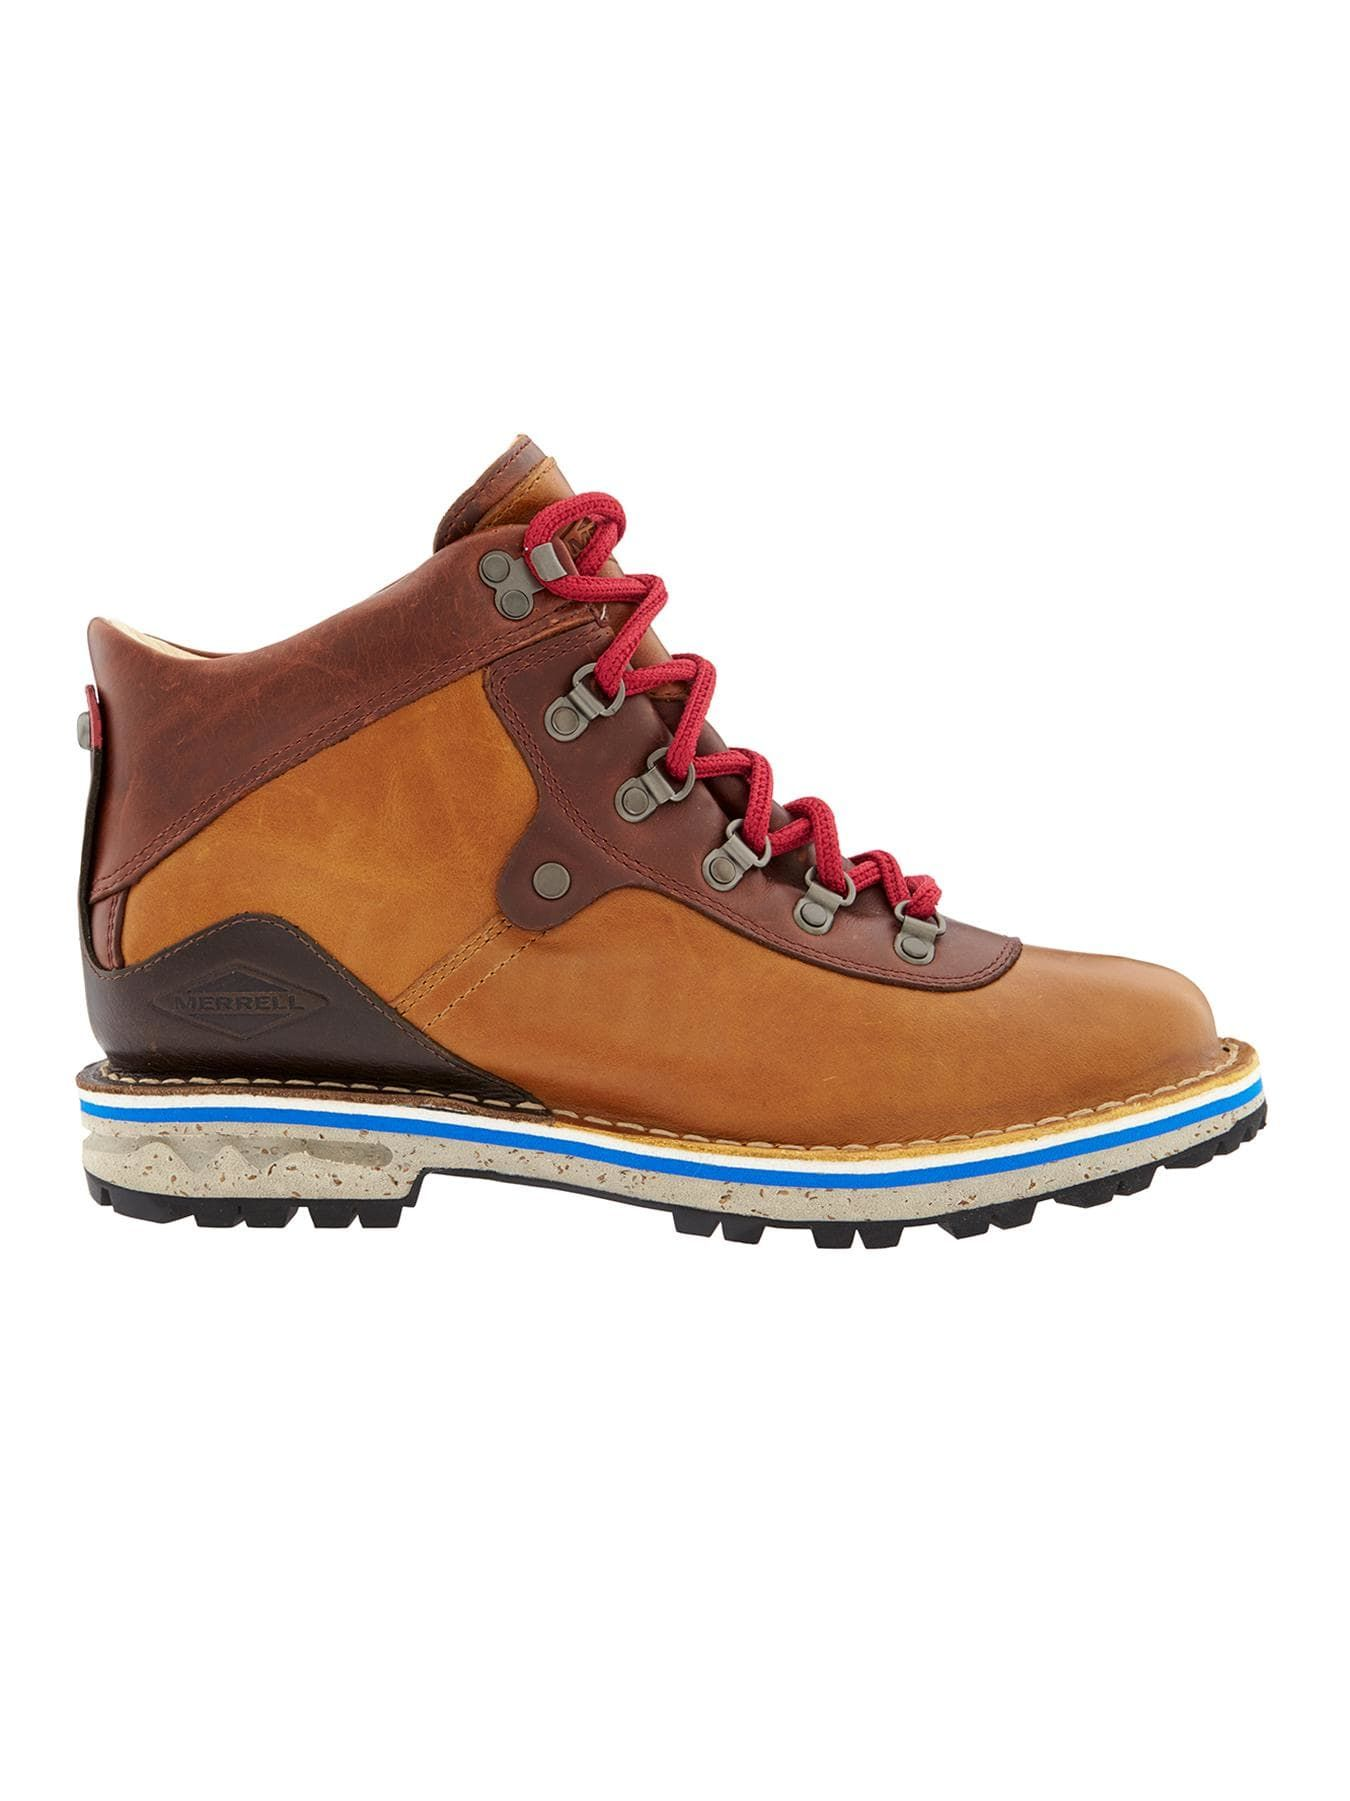 ce0a00694286 The heritage Merrell® boot with premium soft leather and a faux-fur lining  and impermeable membrane for waterproof coverage.